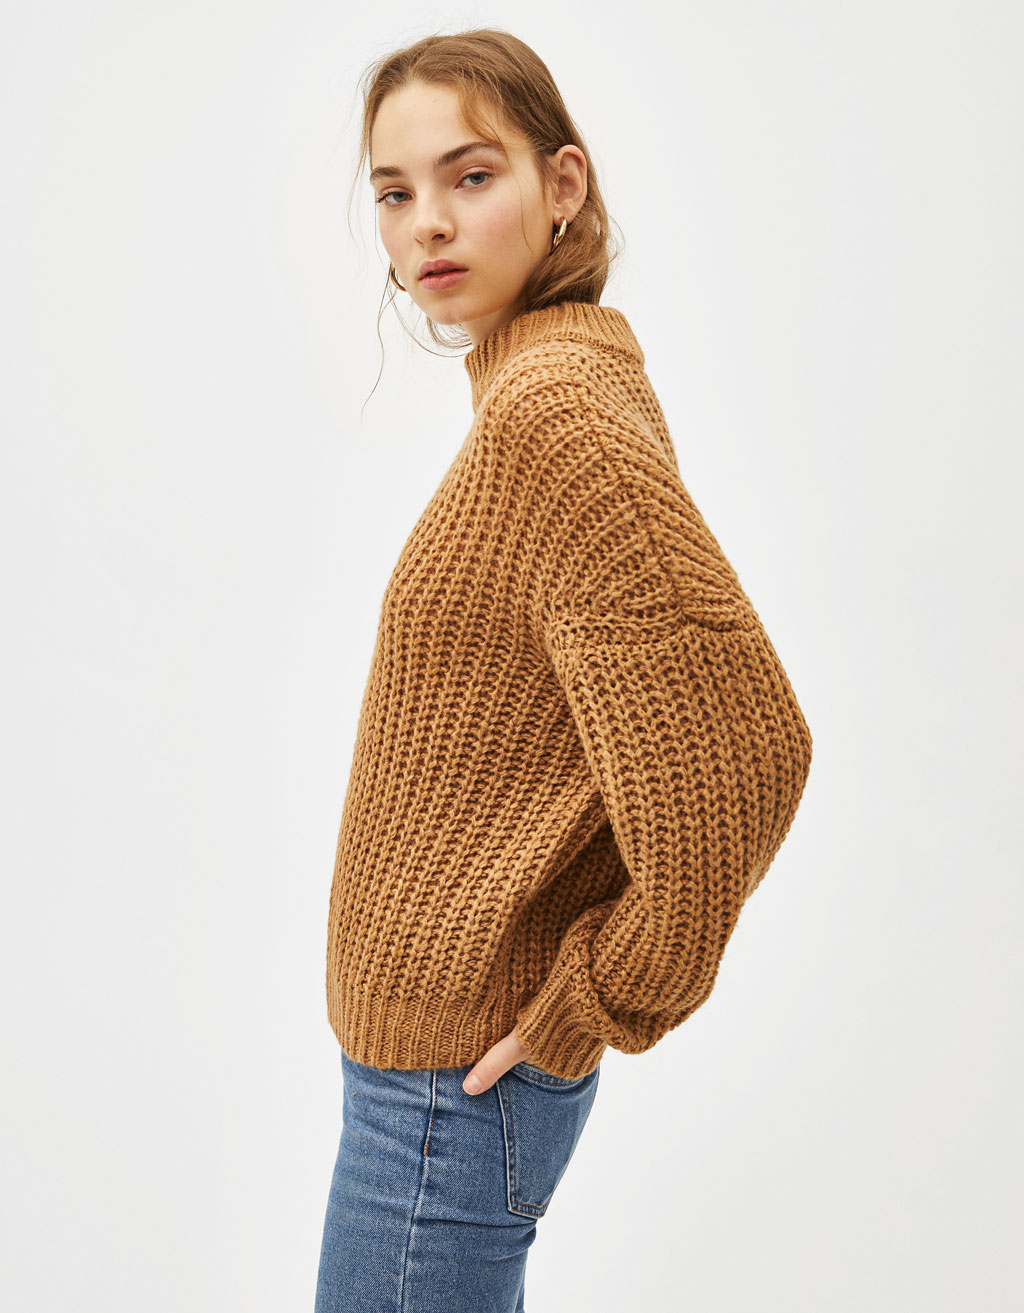 Oversized sweater with mock neck